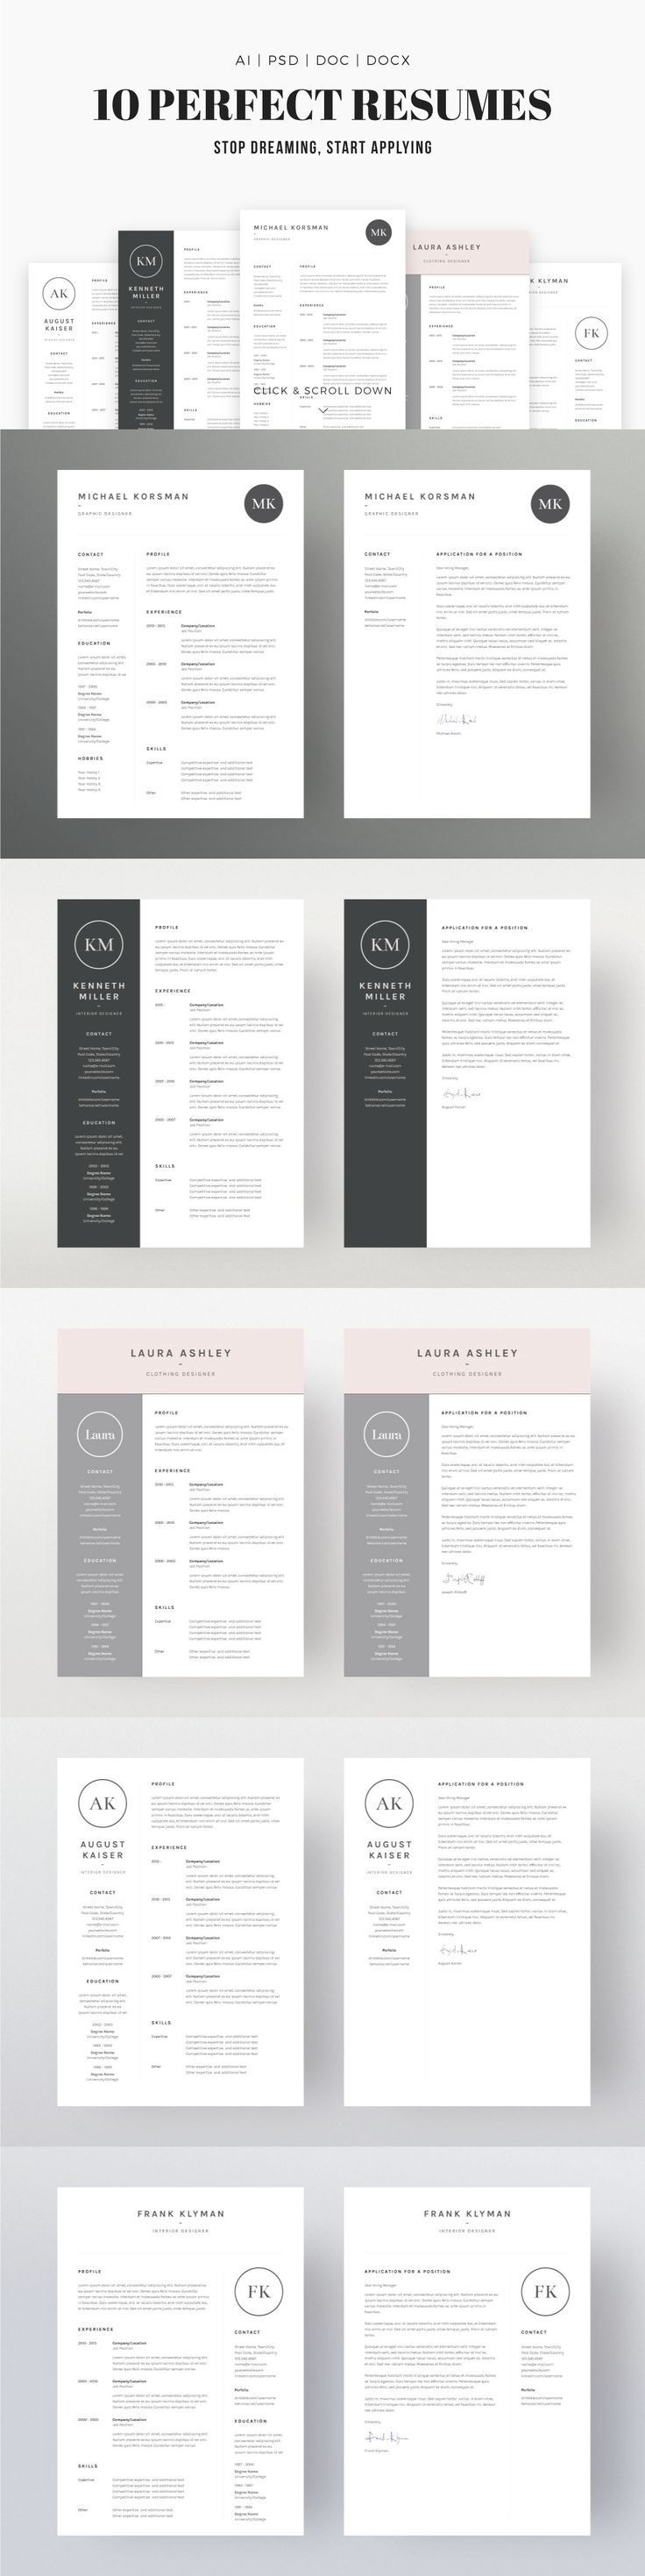 Job SeekerS Dream Bundle Professional Downloadable Resume